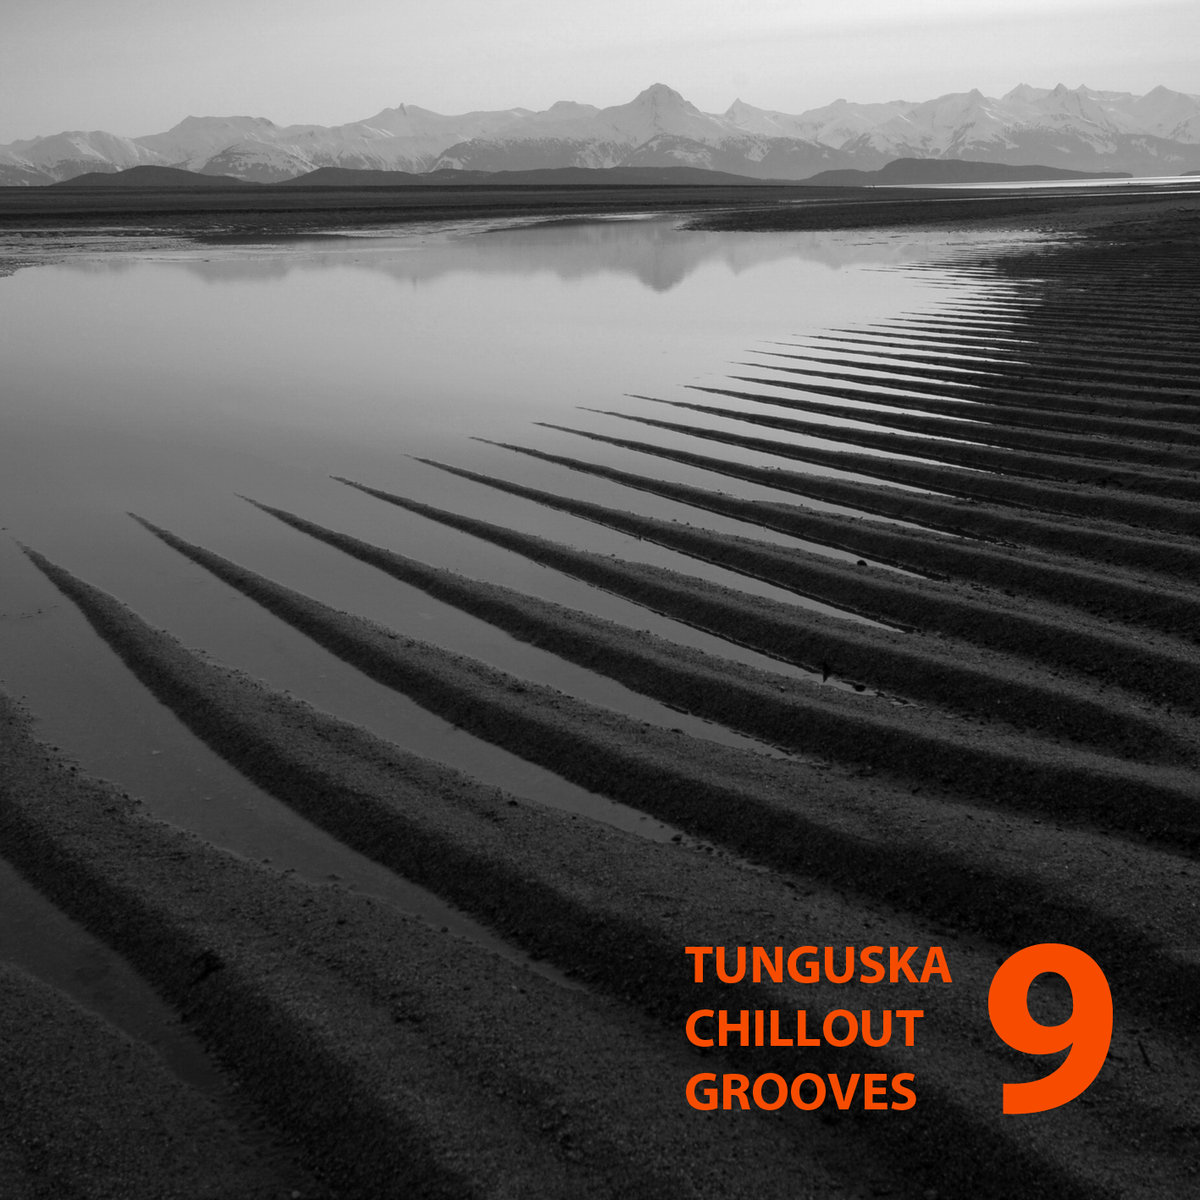 A.e.r.o. & Melodic Brothers - I'll Never Forget You @ 'Tunguska Chillout Grooves - Volume 9' album (electronic, ambient)